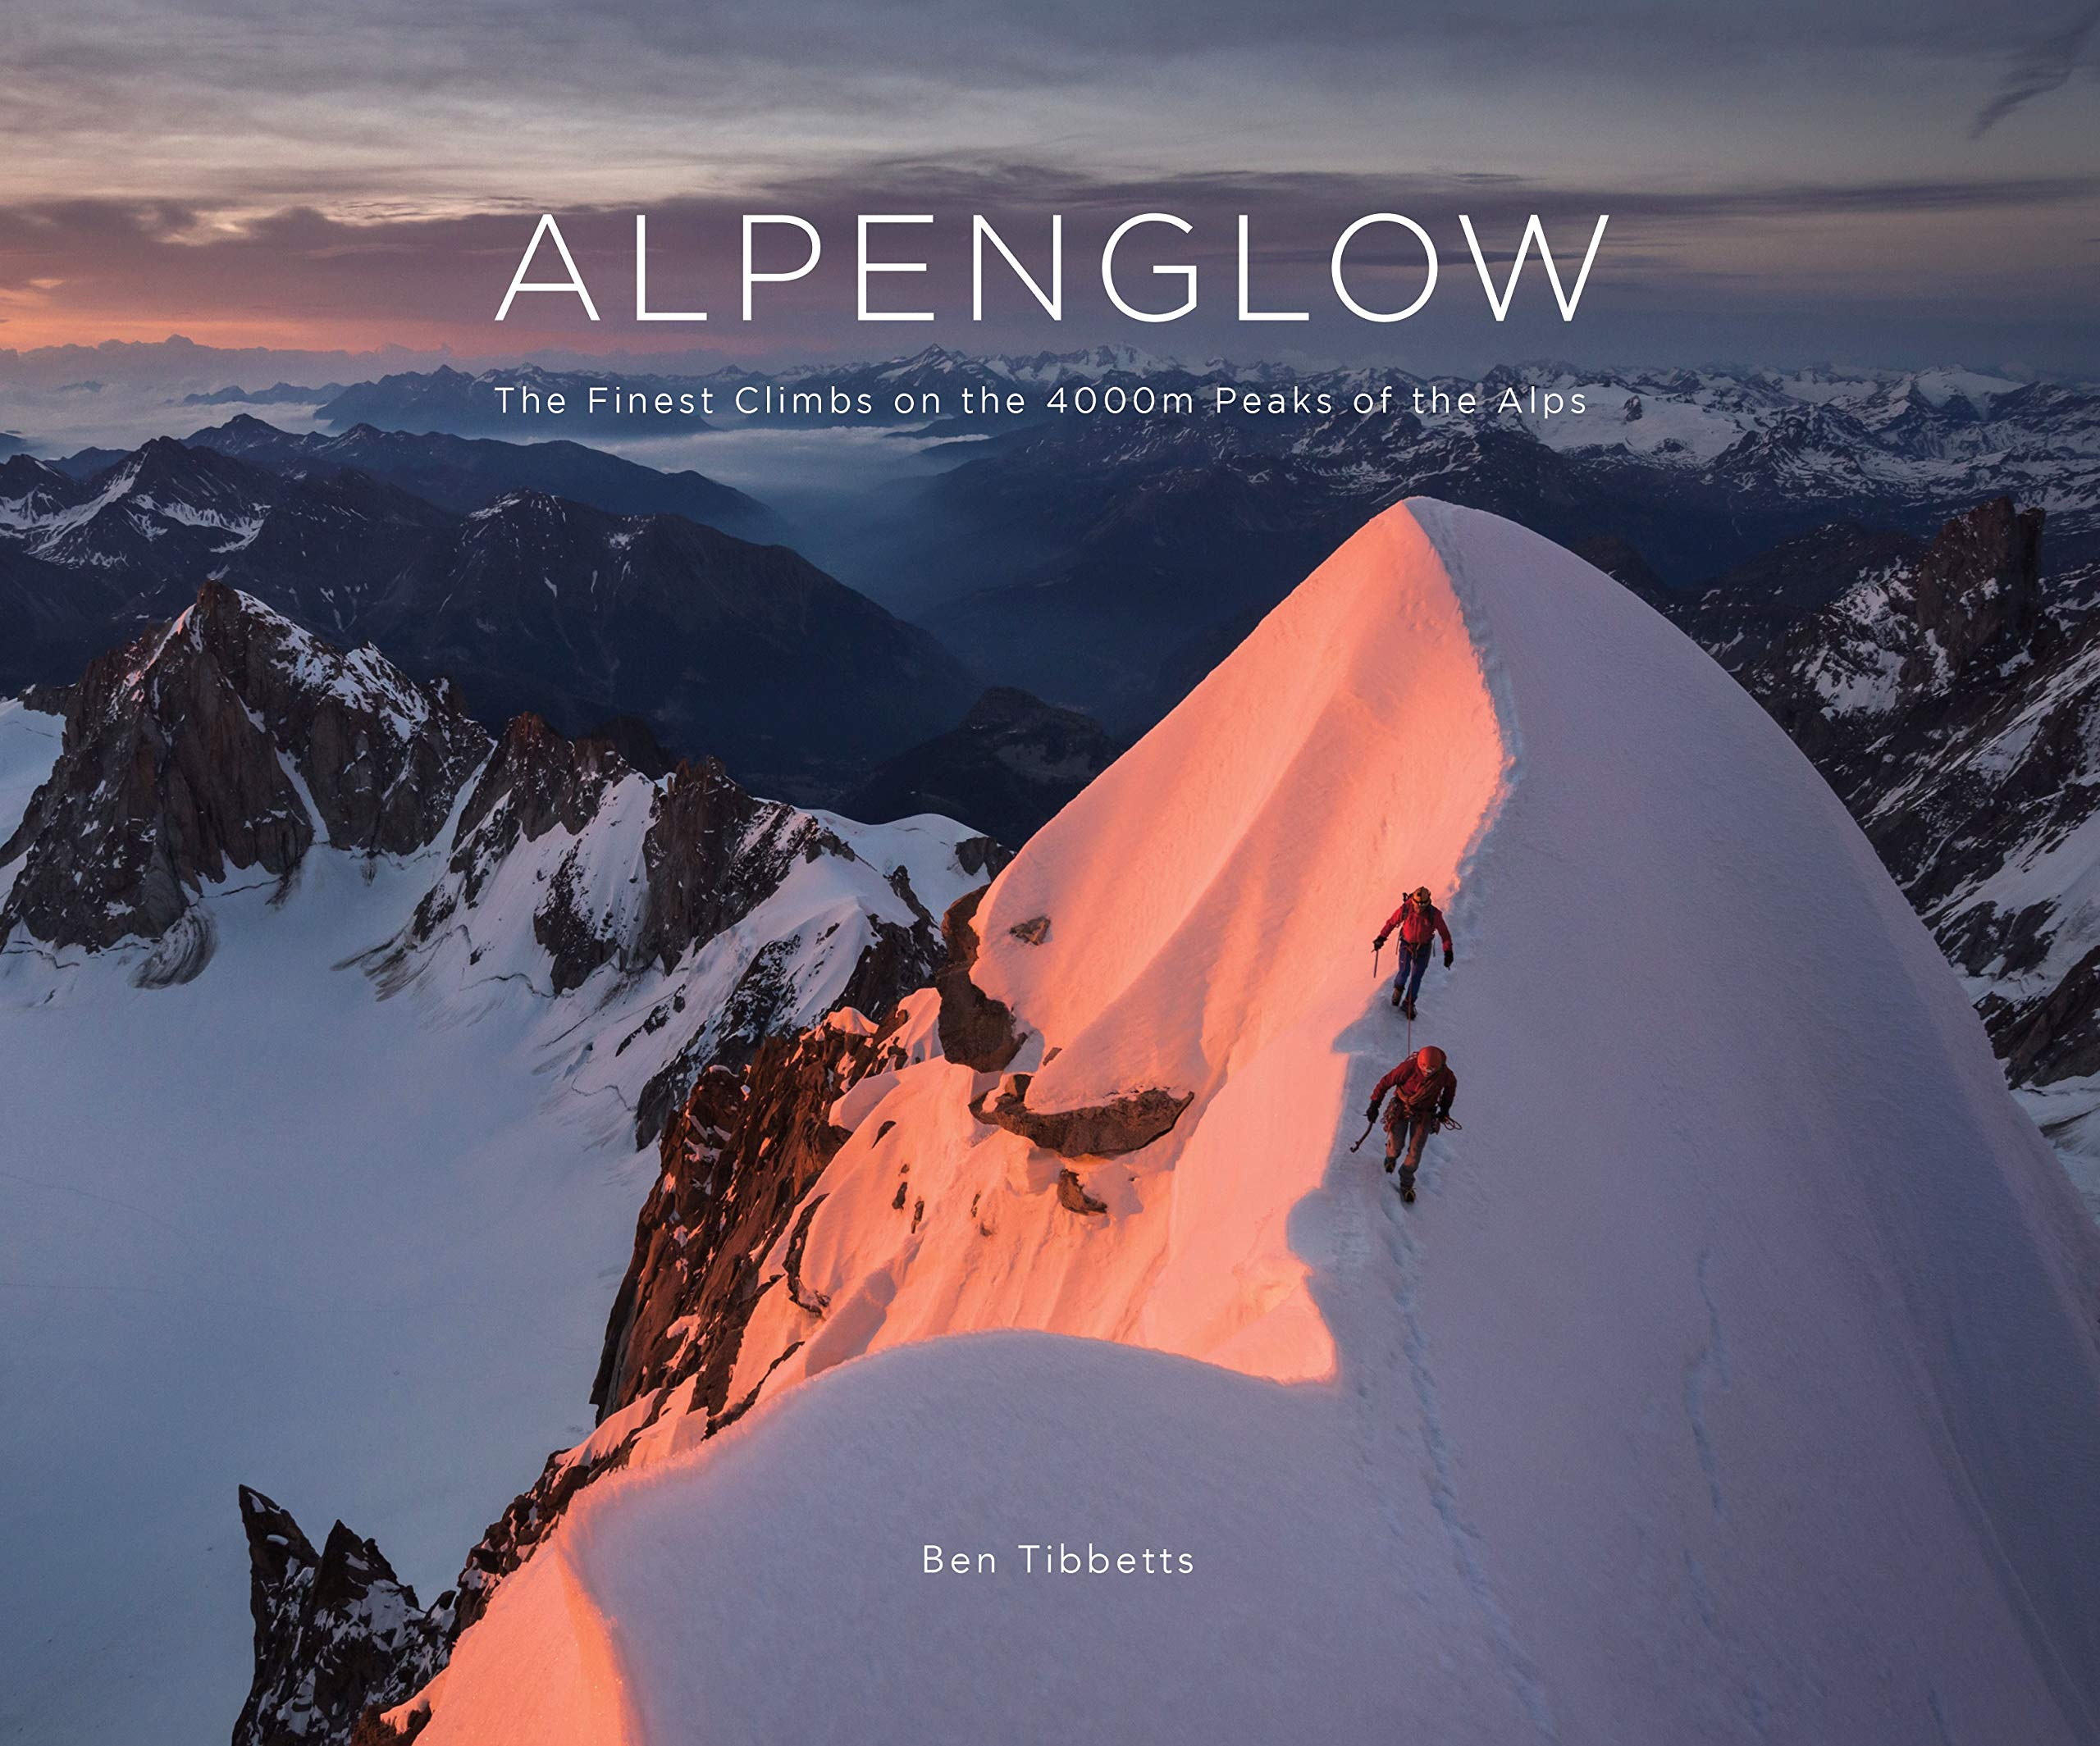 Alpenglow - The Finest Climbs on the 4000m Peaks of the Alps by Ben Tibbetts